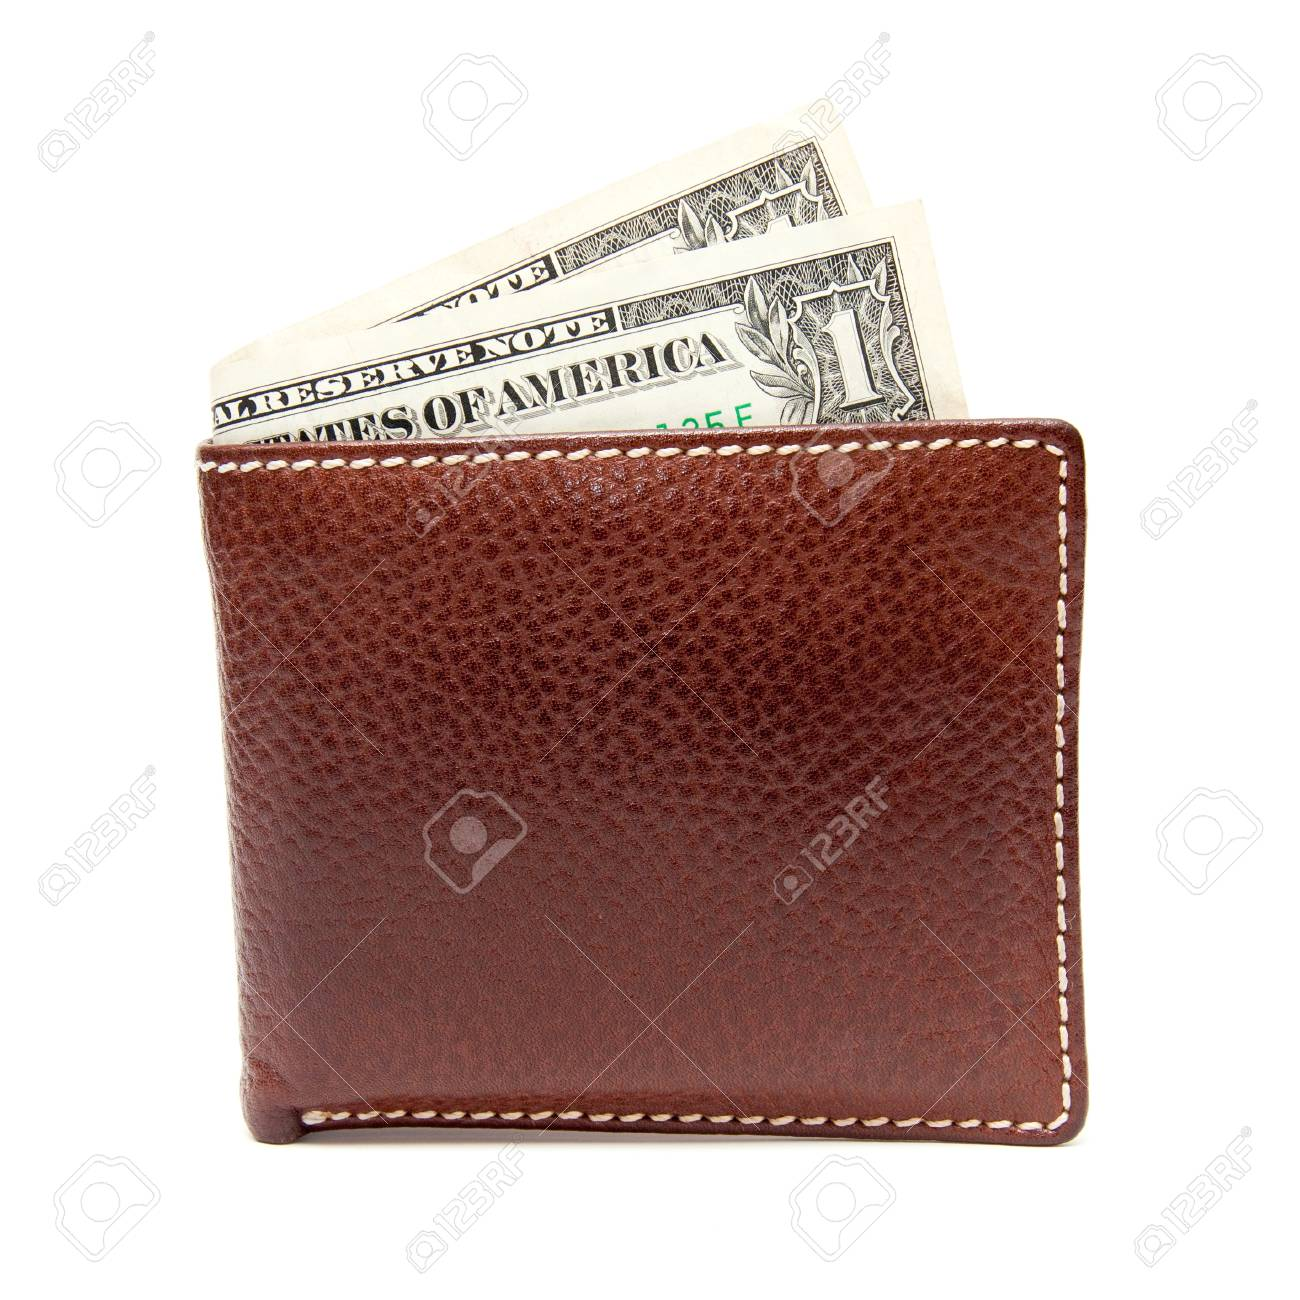 brown leather wallet with money isolated on white background Stock Photo - 14210999